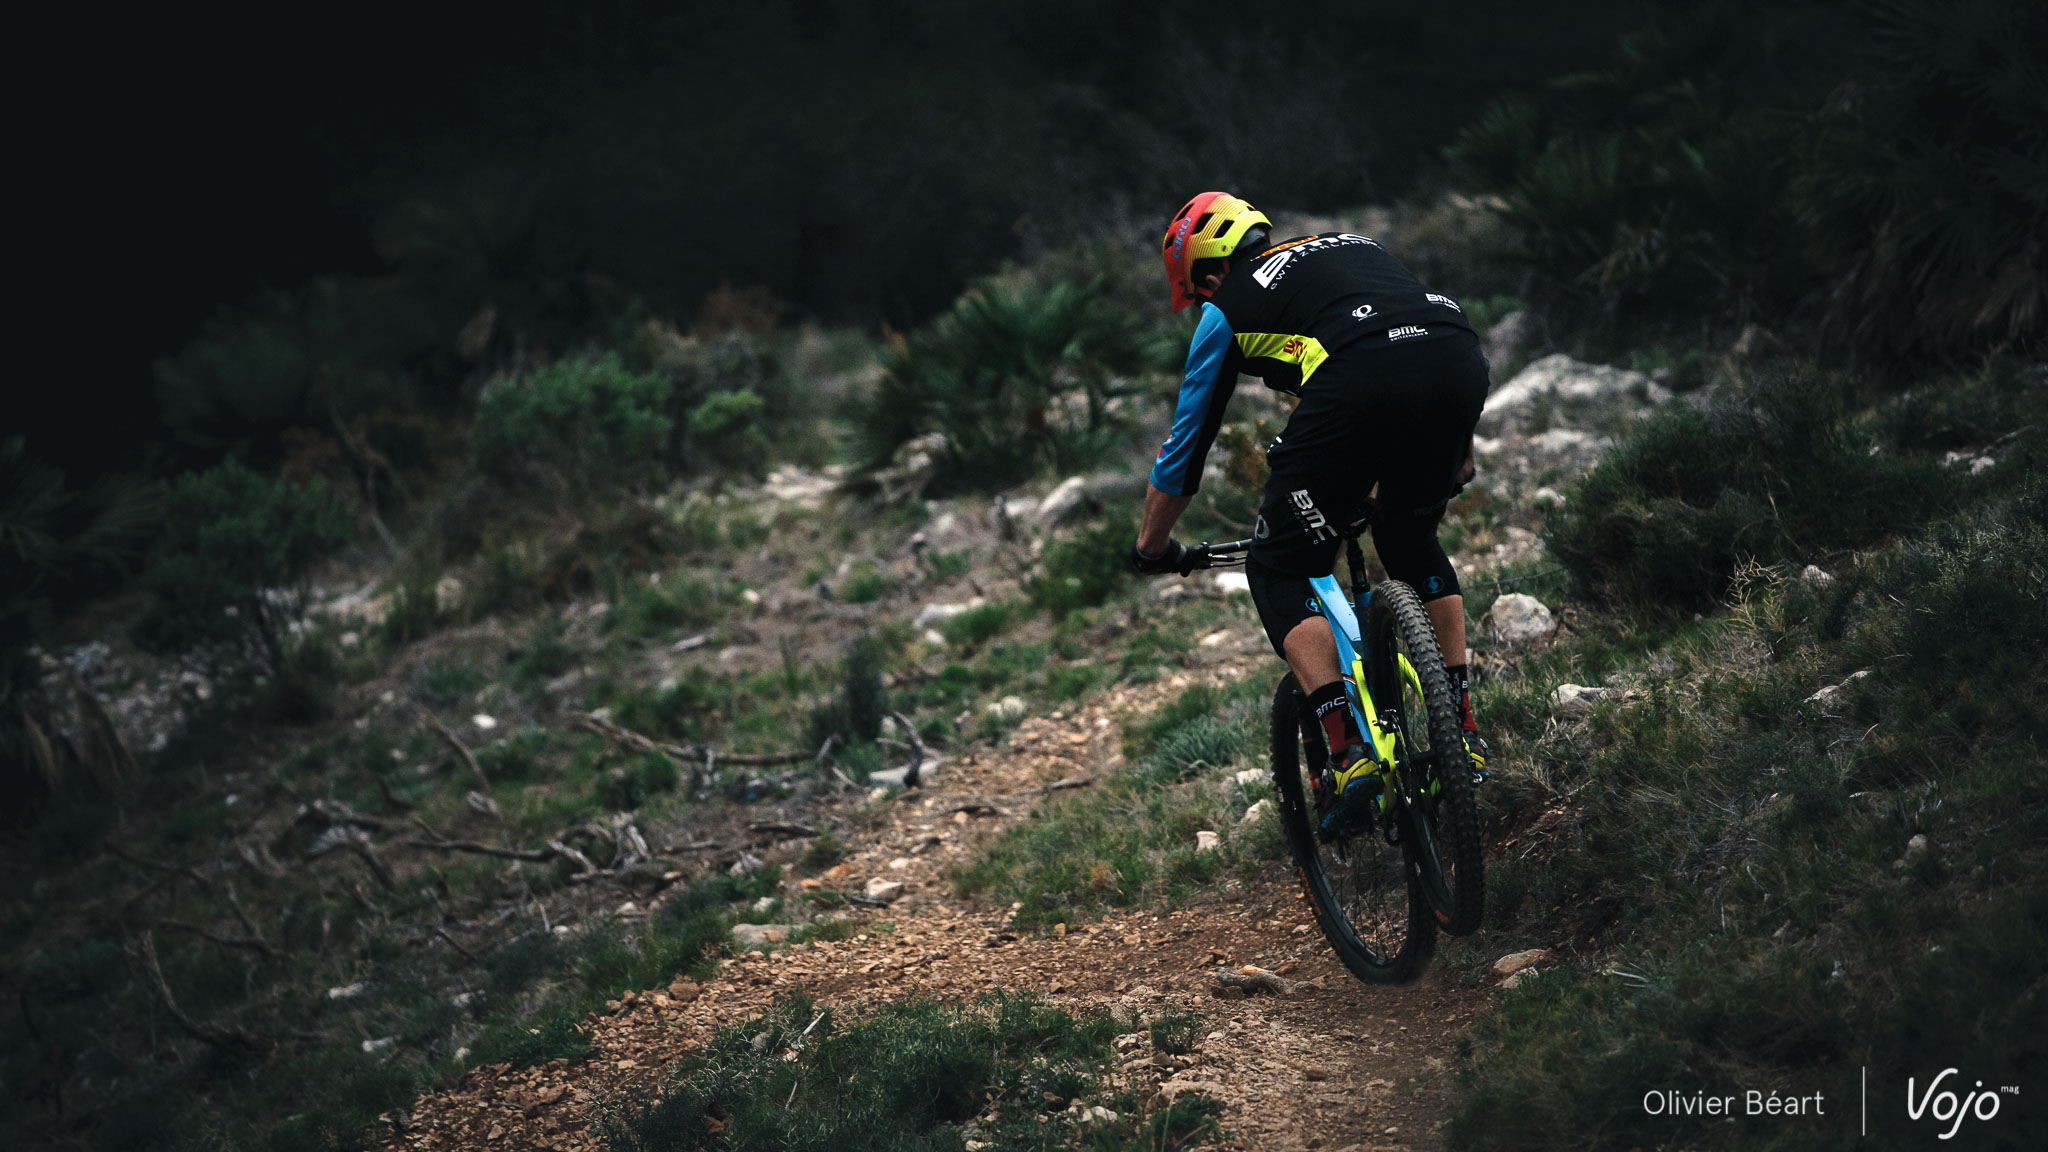 Francois_Bailly_Maitre_Interview_BMC_TrailCrew_Copyright_OBeart_VojoMag-2